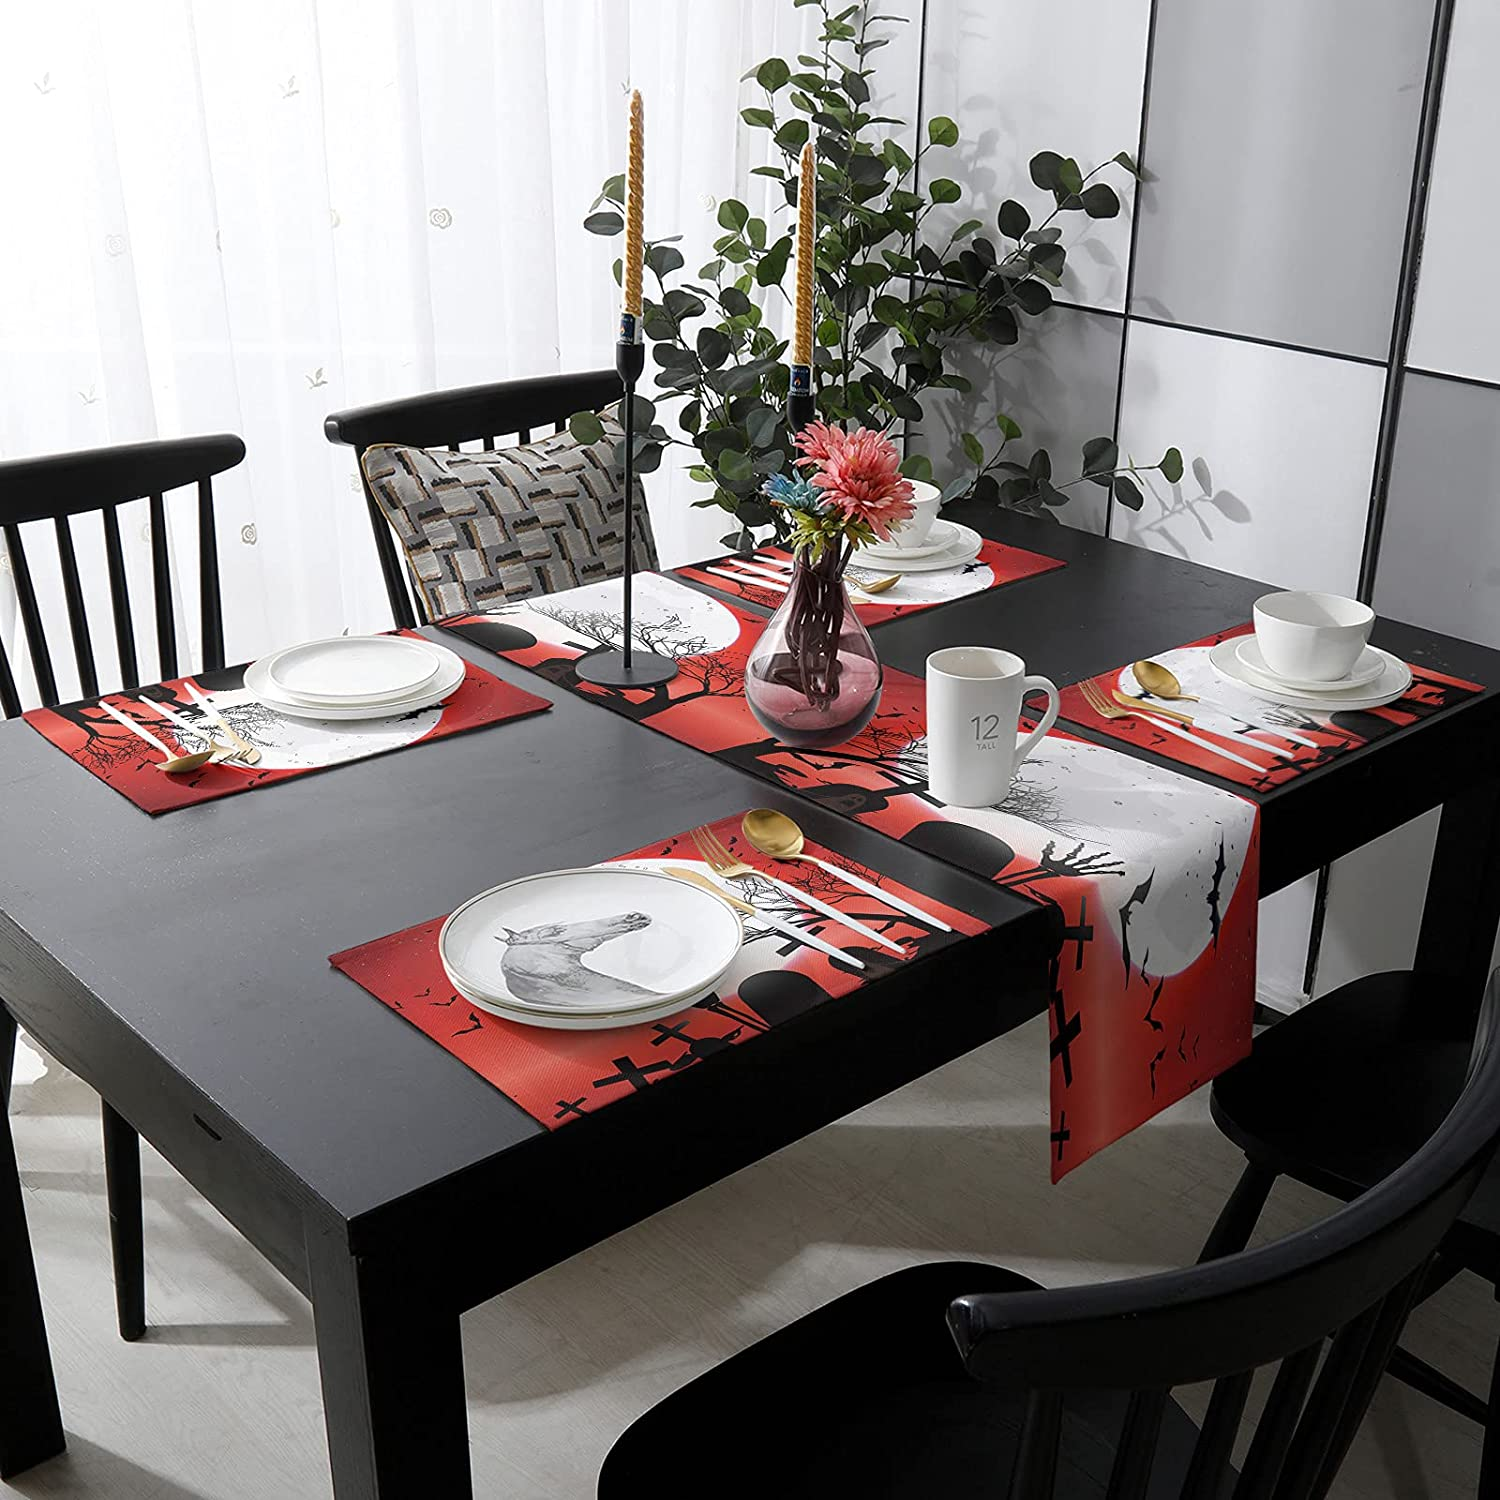 Womenfocus Outdoor Table Runner and Gorgeous Kitchen 4 Heat-Pr Placemats Free shipping